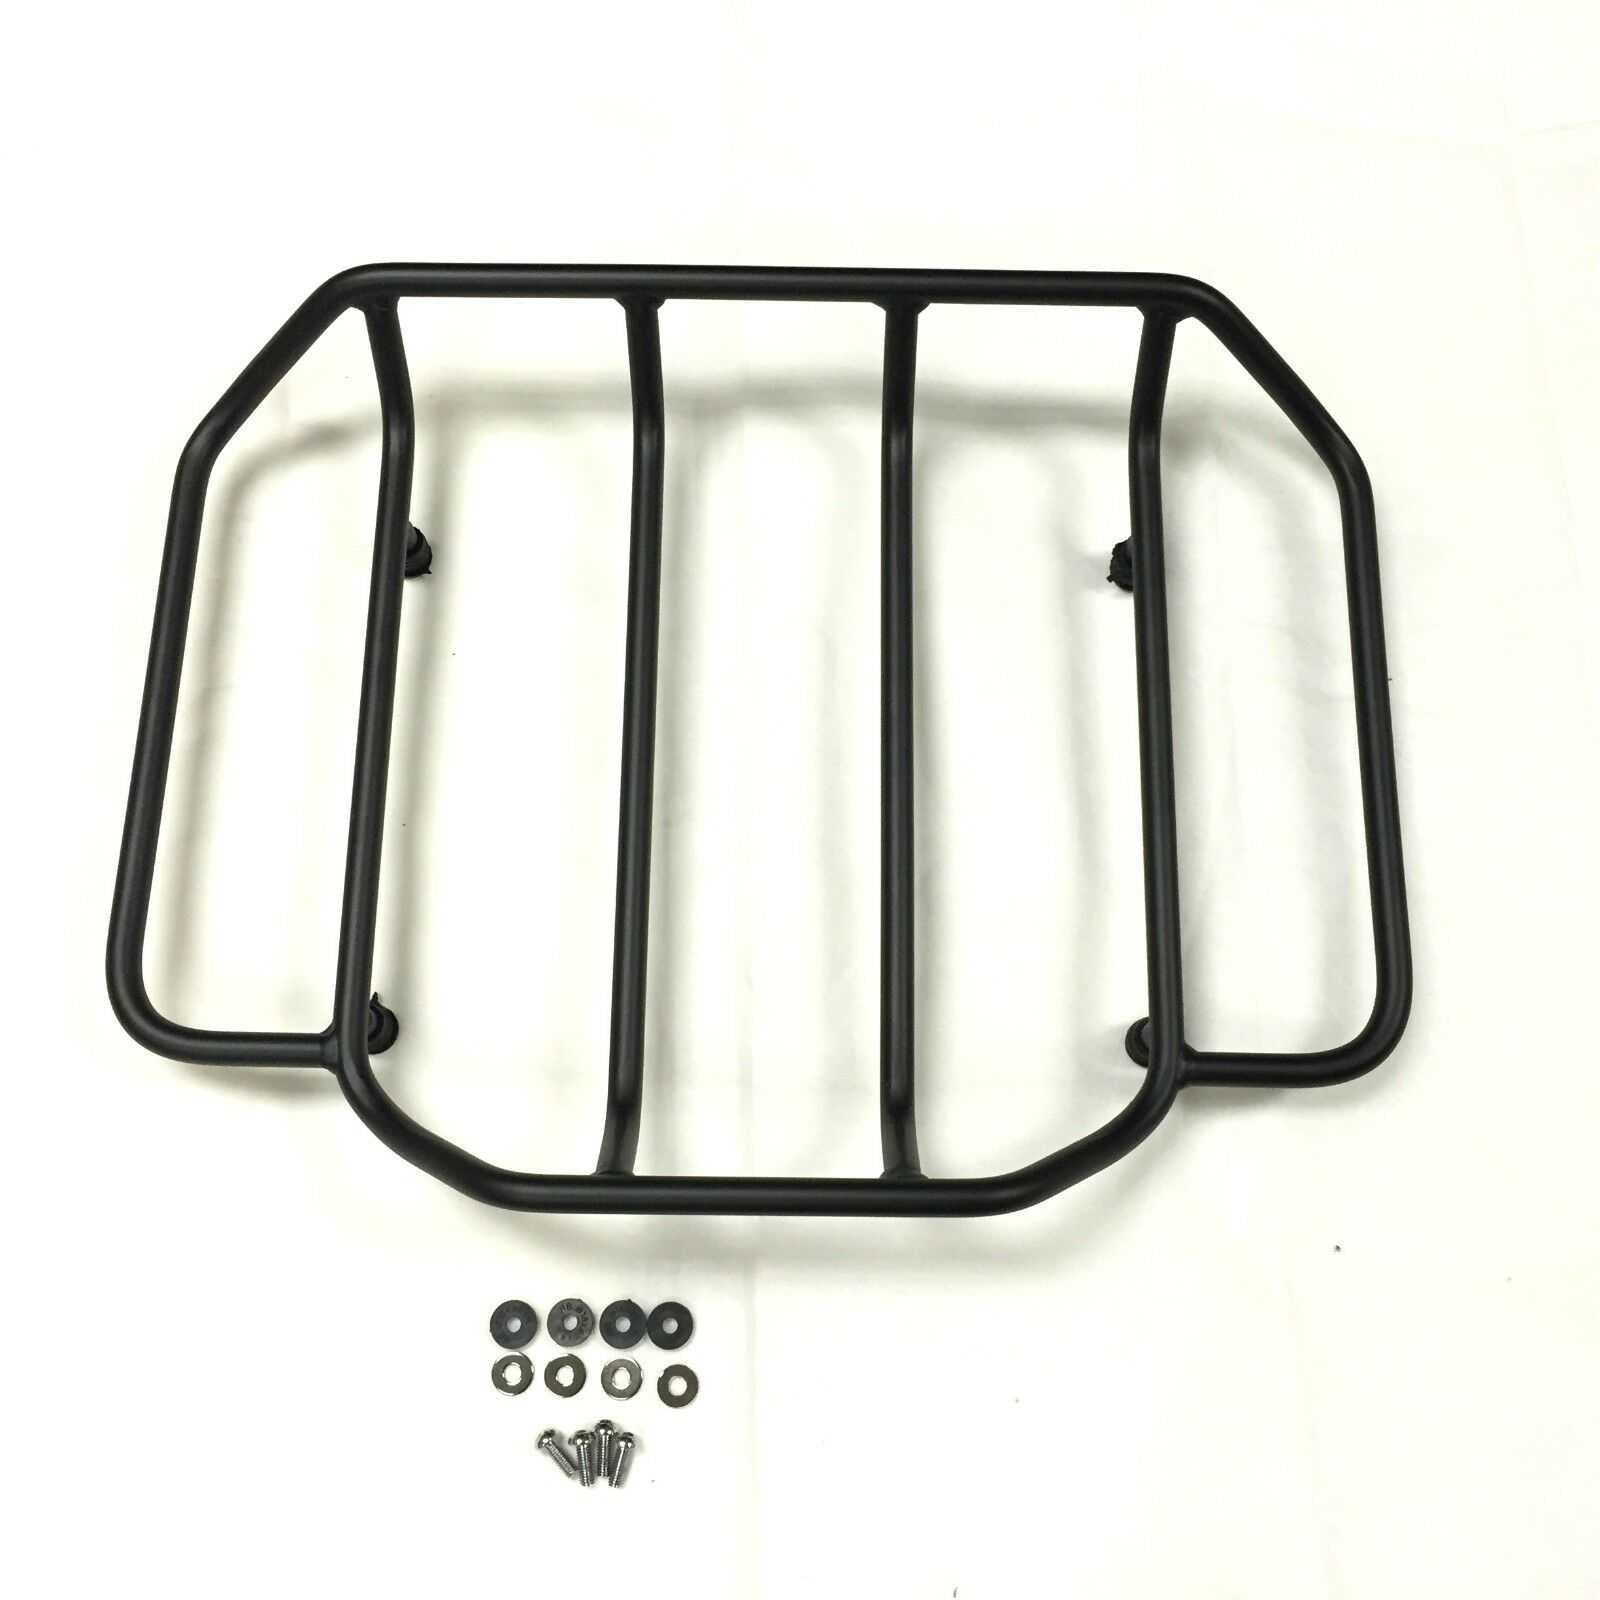 Motorcycle Luggage Rack for Touring Road King Street Glide Road Glide FLTRX Electra Glide CVO 1984-2018 black